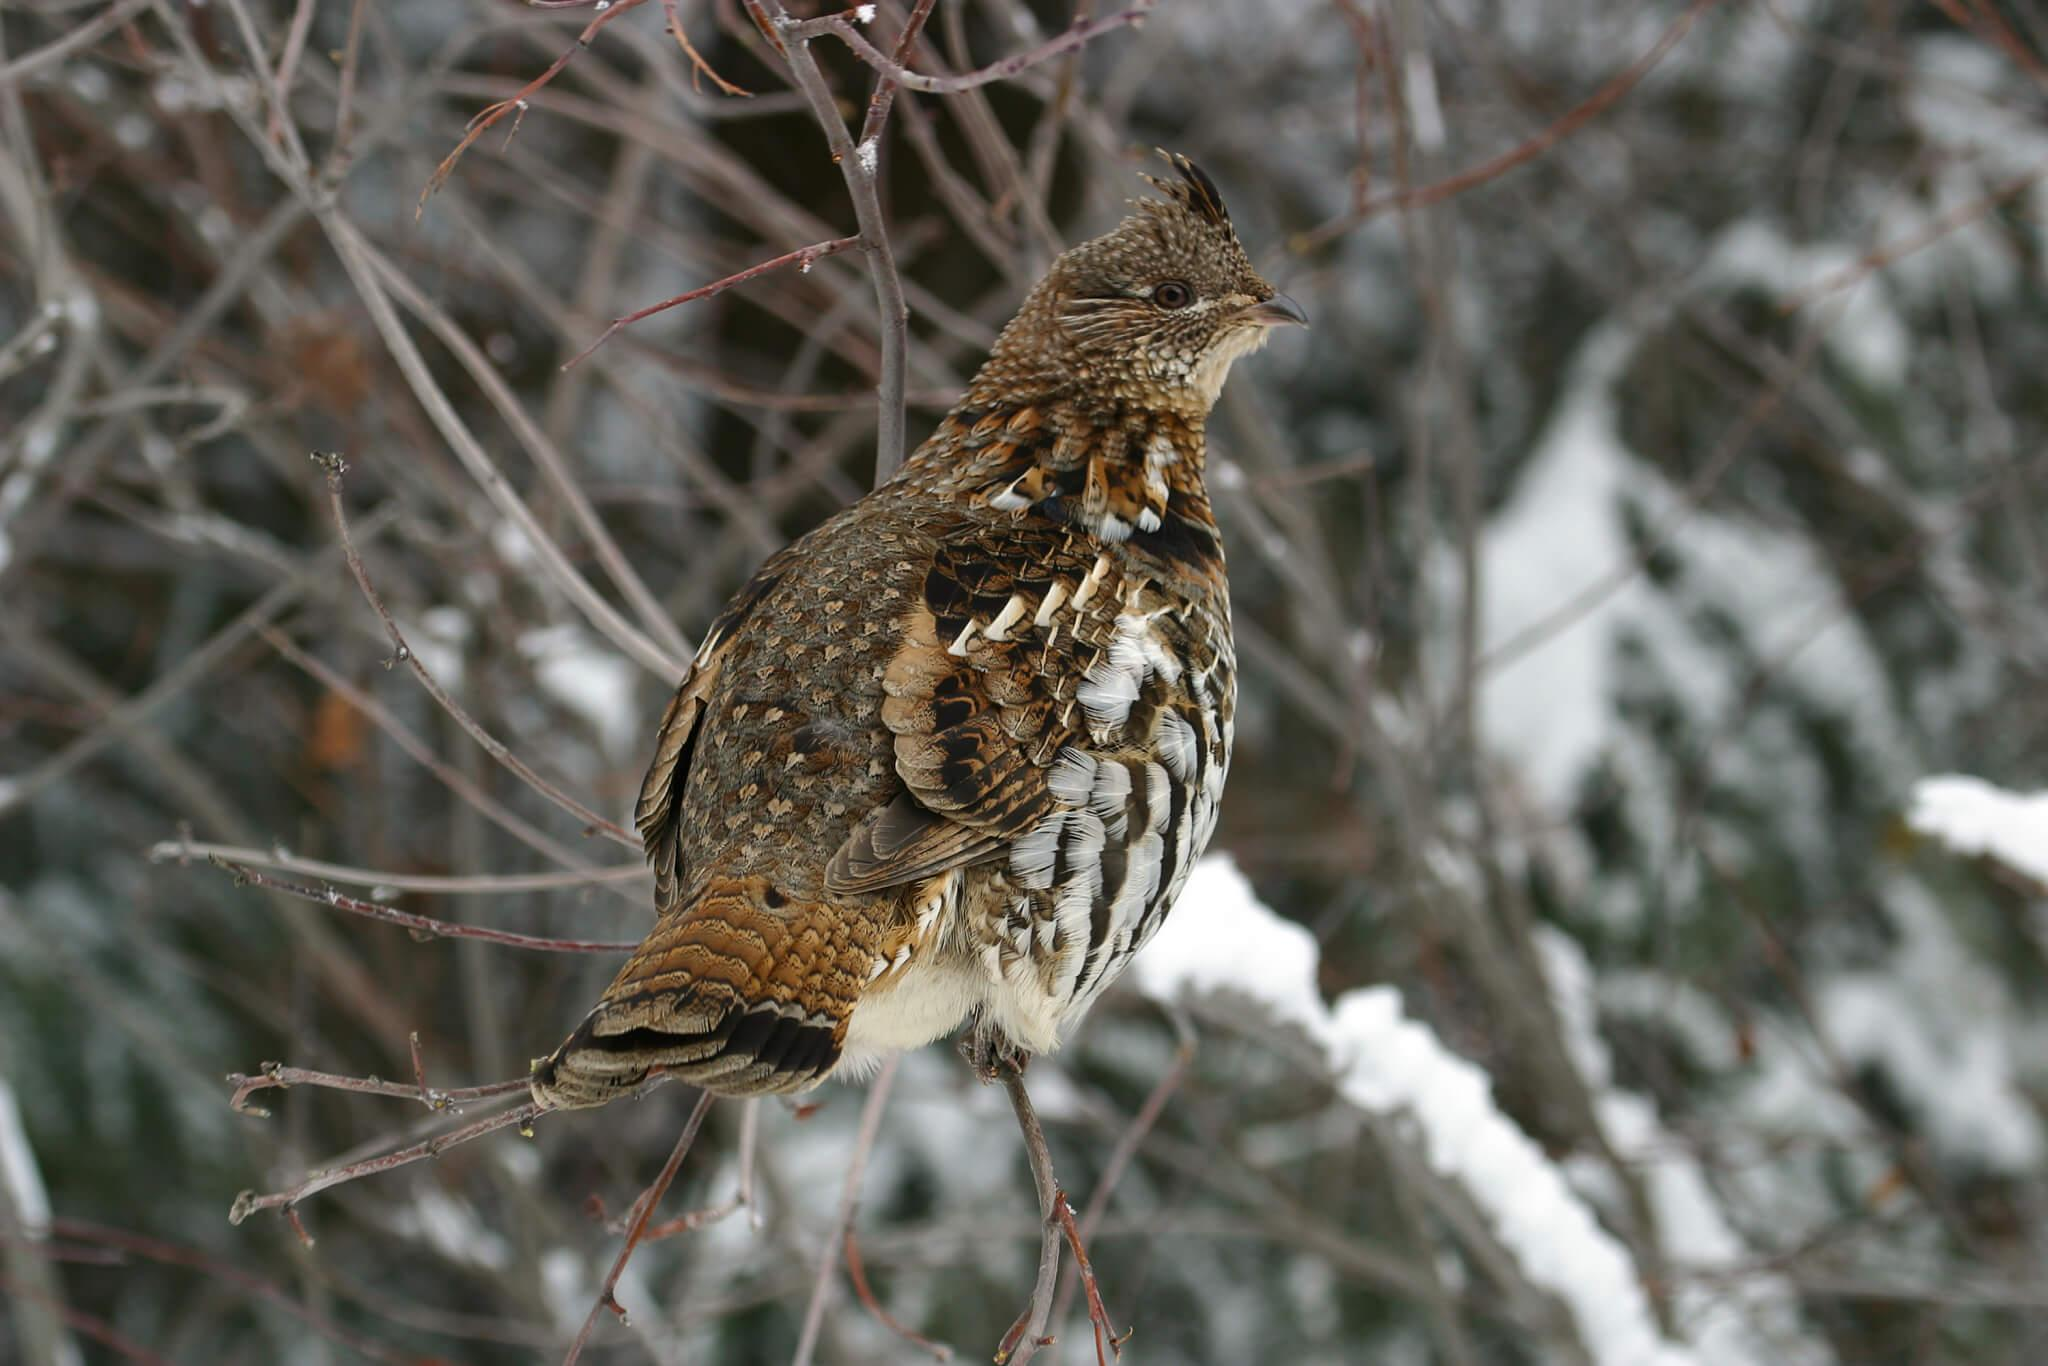 A ruffed grouse perched on a tree, in winter